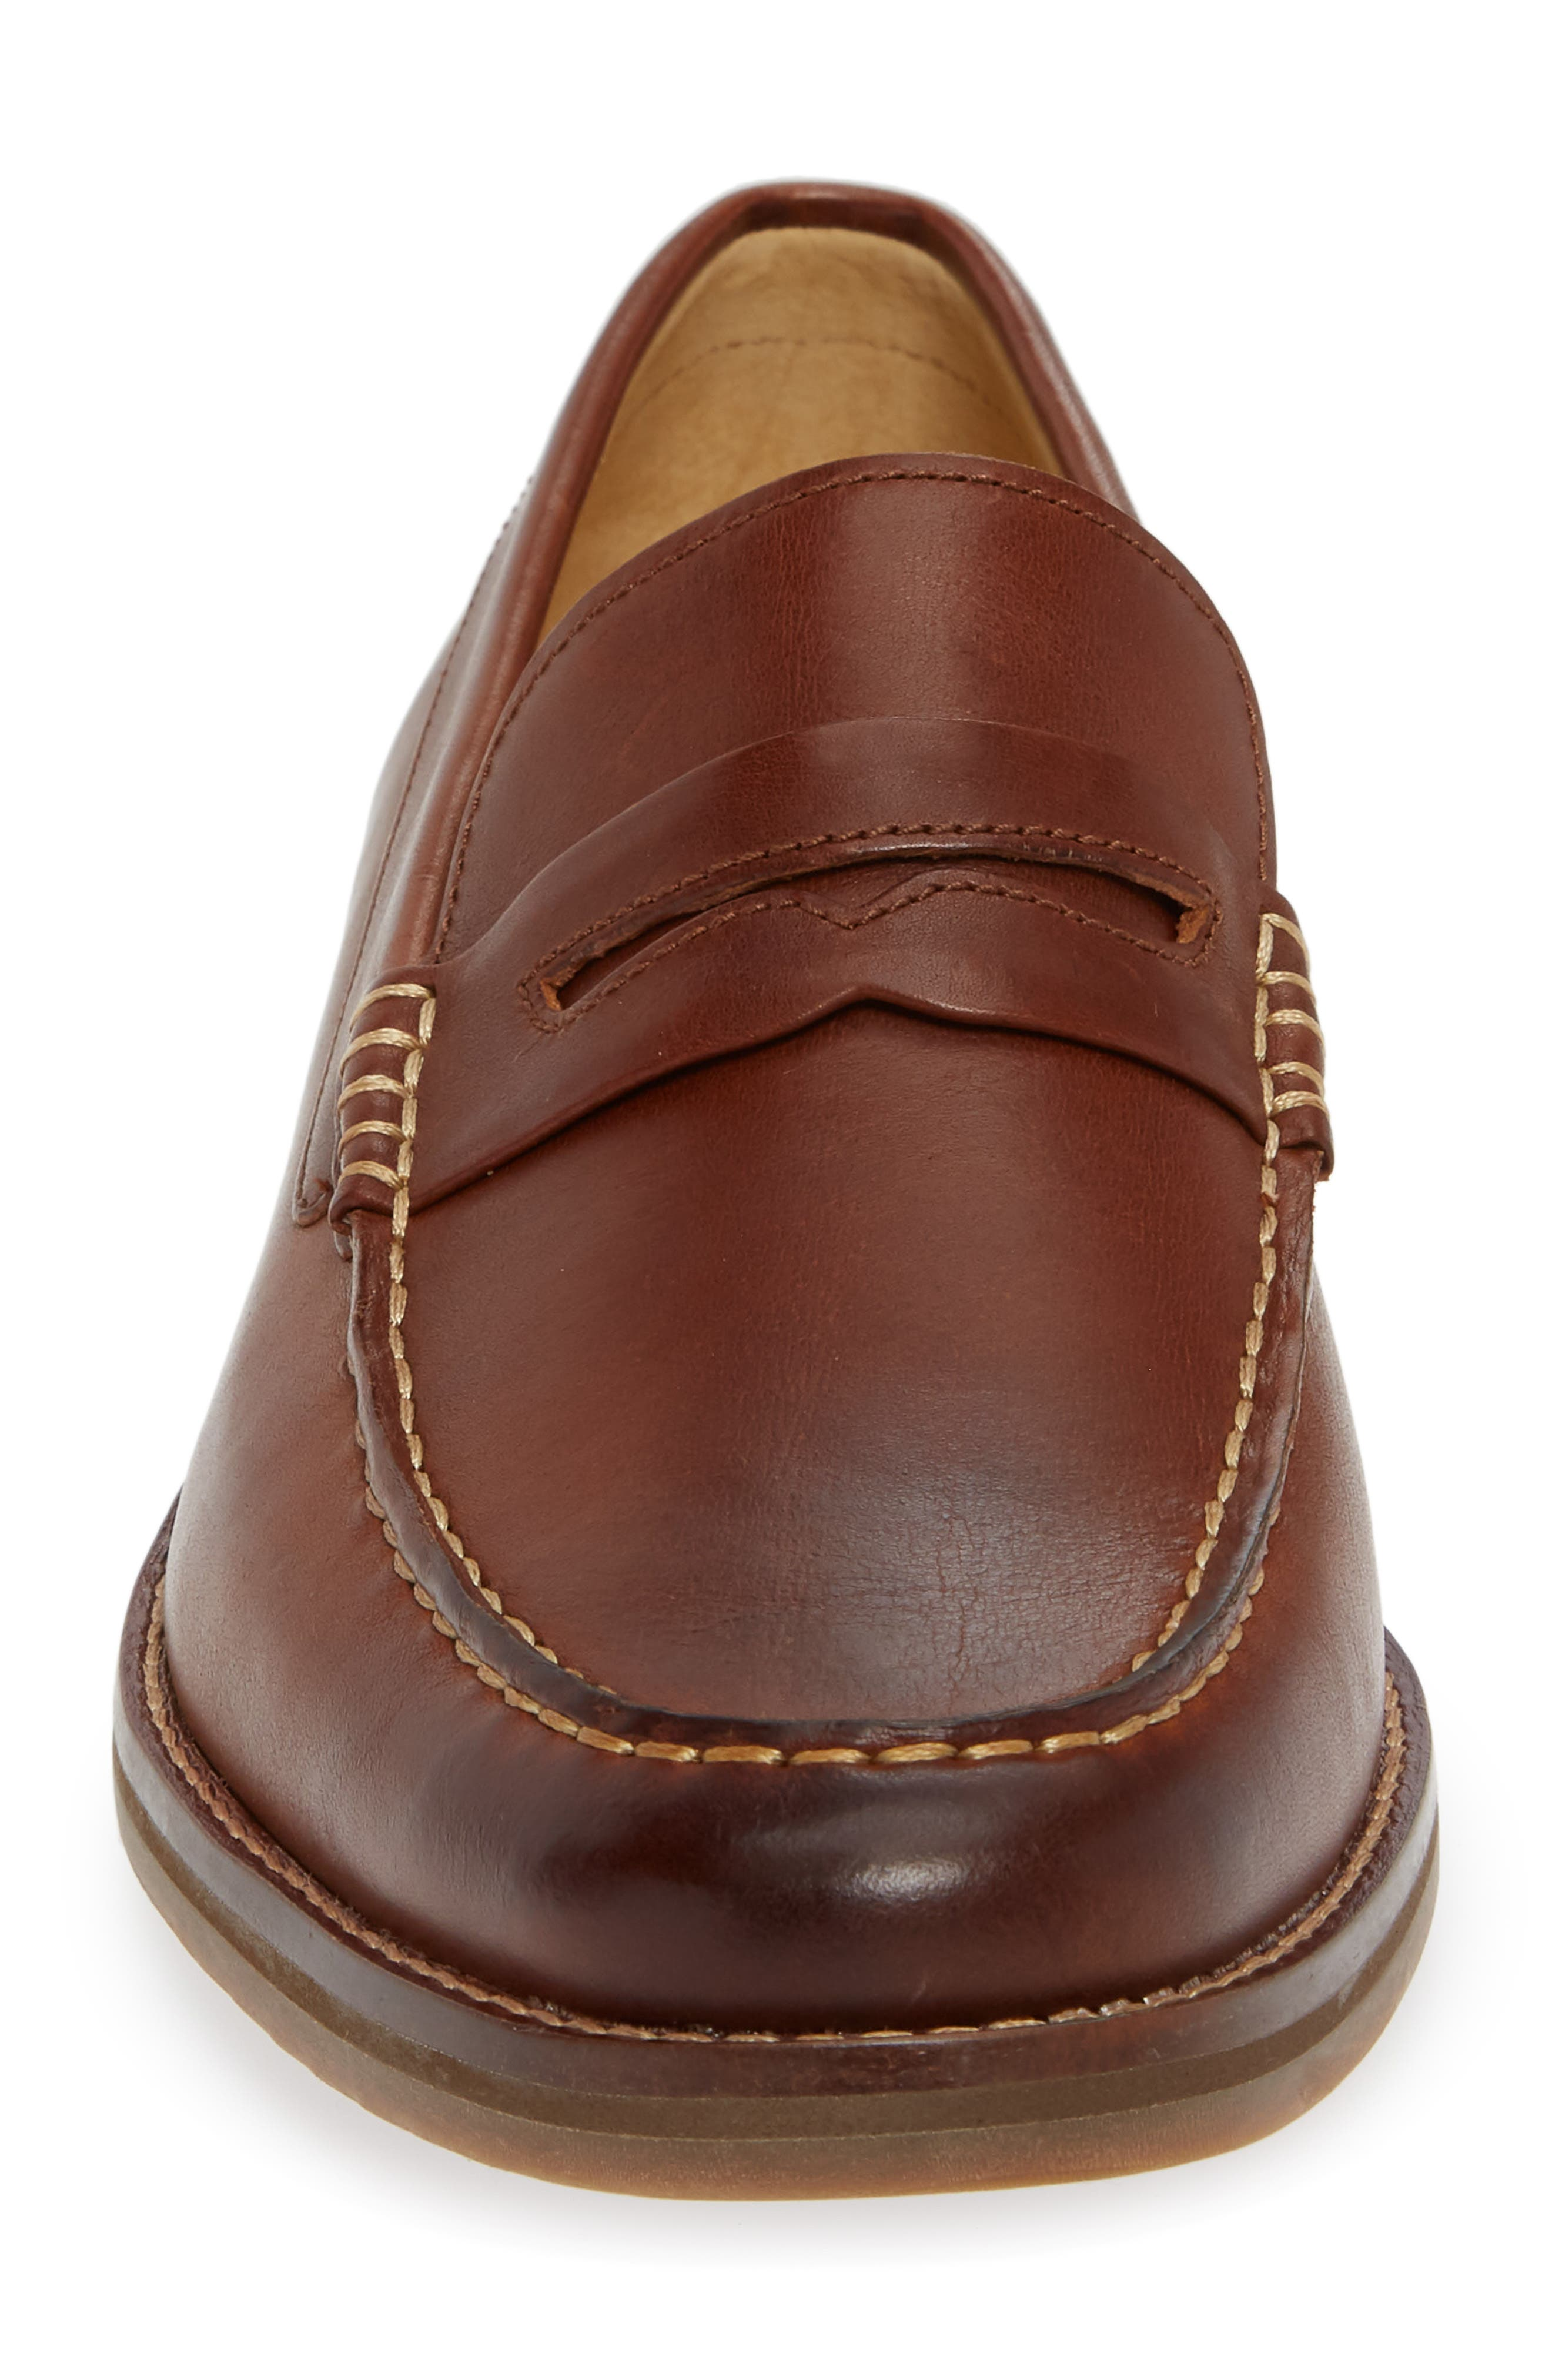 Gold Cup Exeter Penny Loafer,                             Alternate thumbnail 4, color,                             TAN